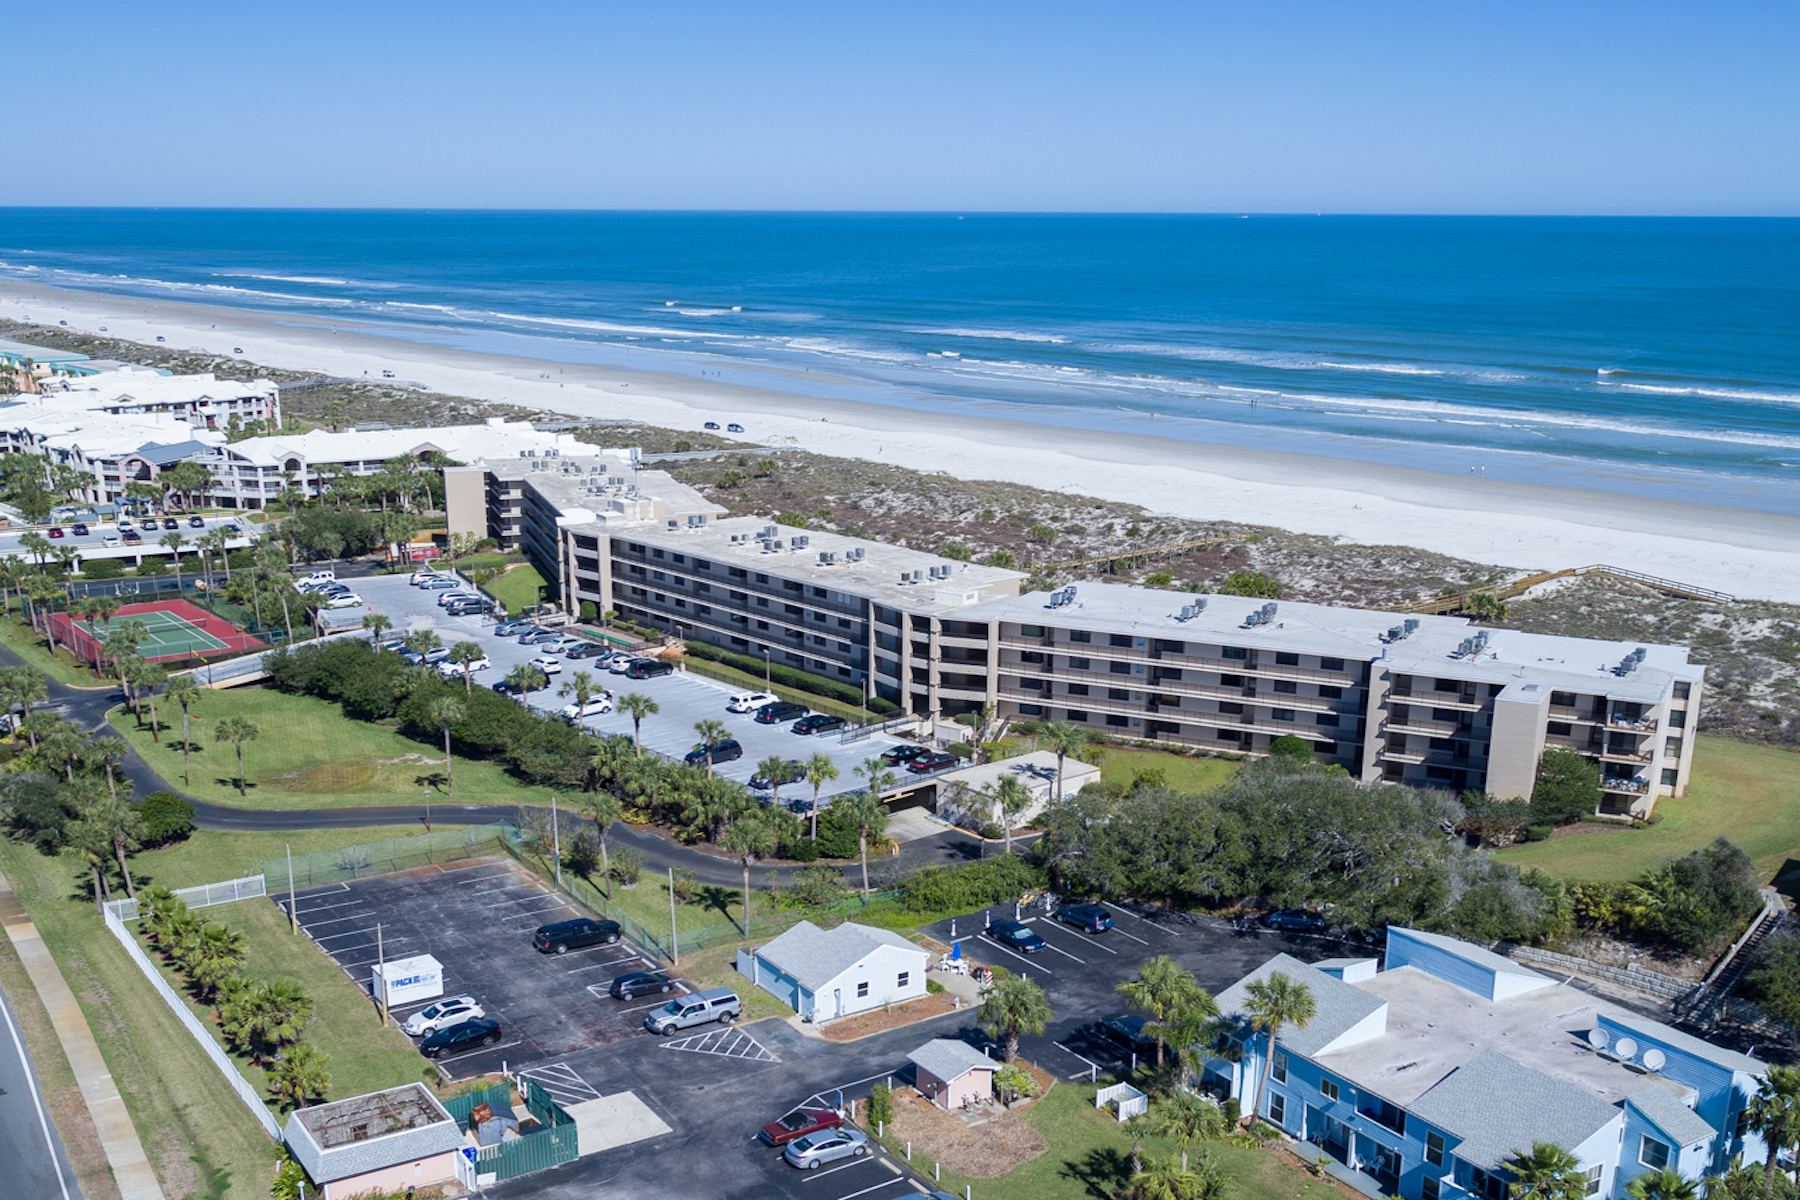 Condominium for Sale at Barefoot Trace 6240 South A1A #208 St. Augustine, Florida, 32080 United States